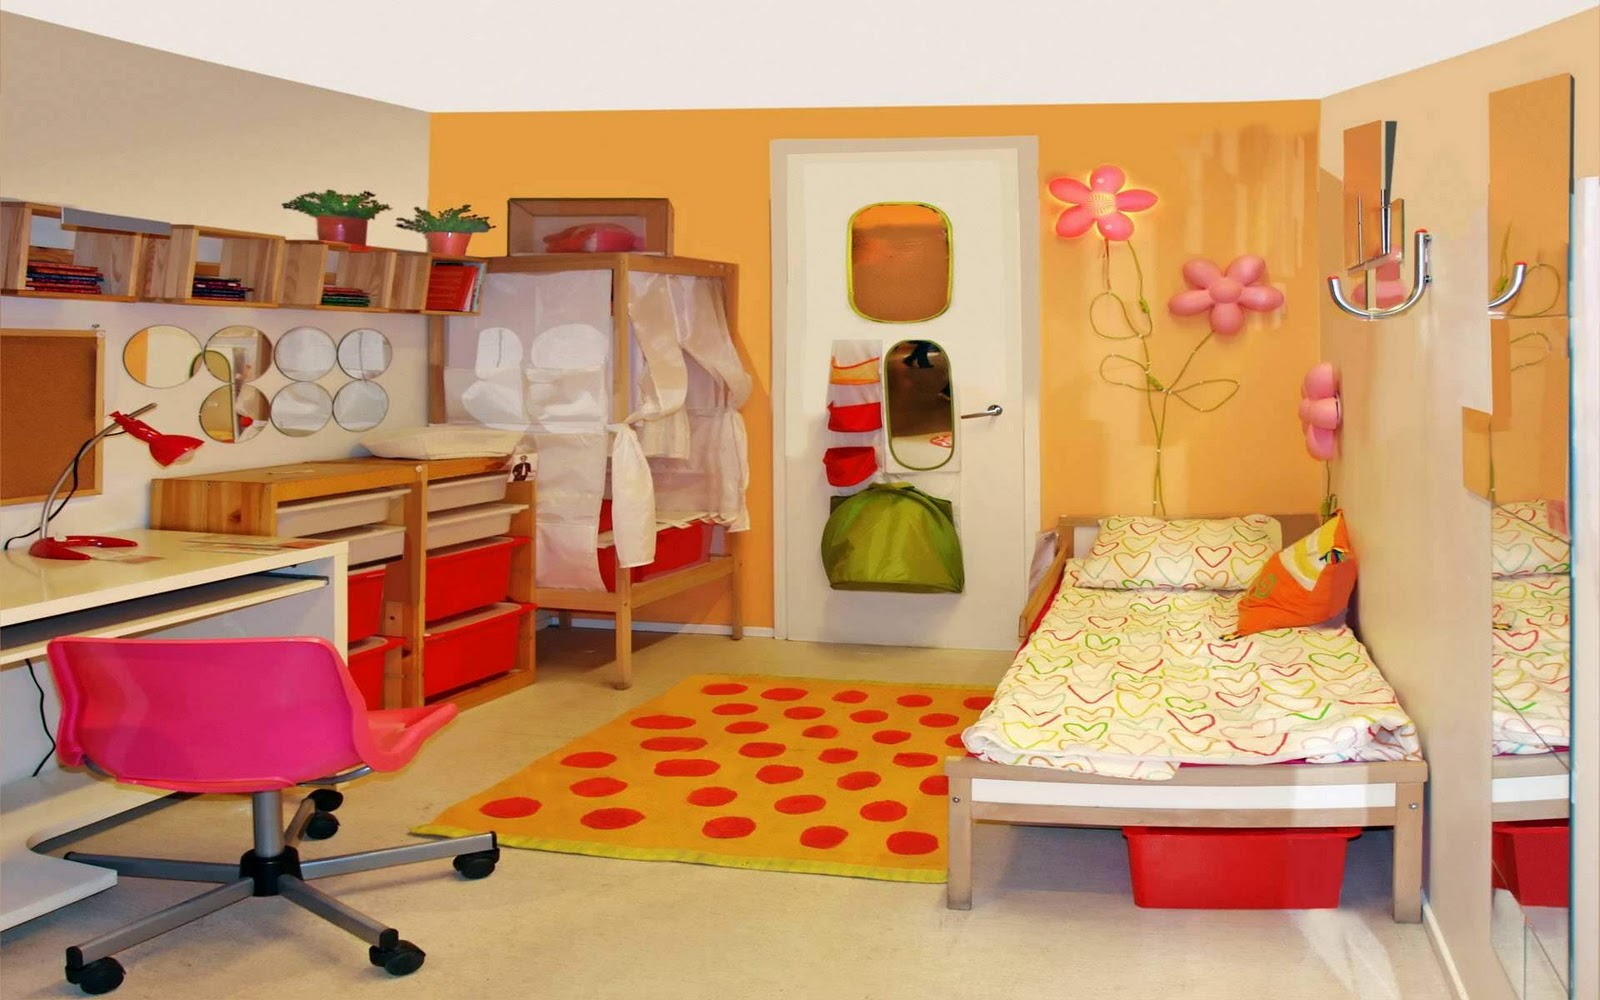 wallpaper wallpaper ideas for kids room